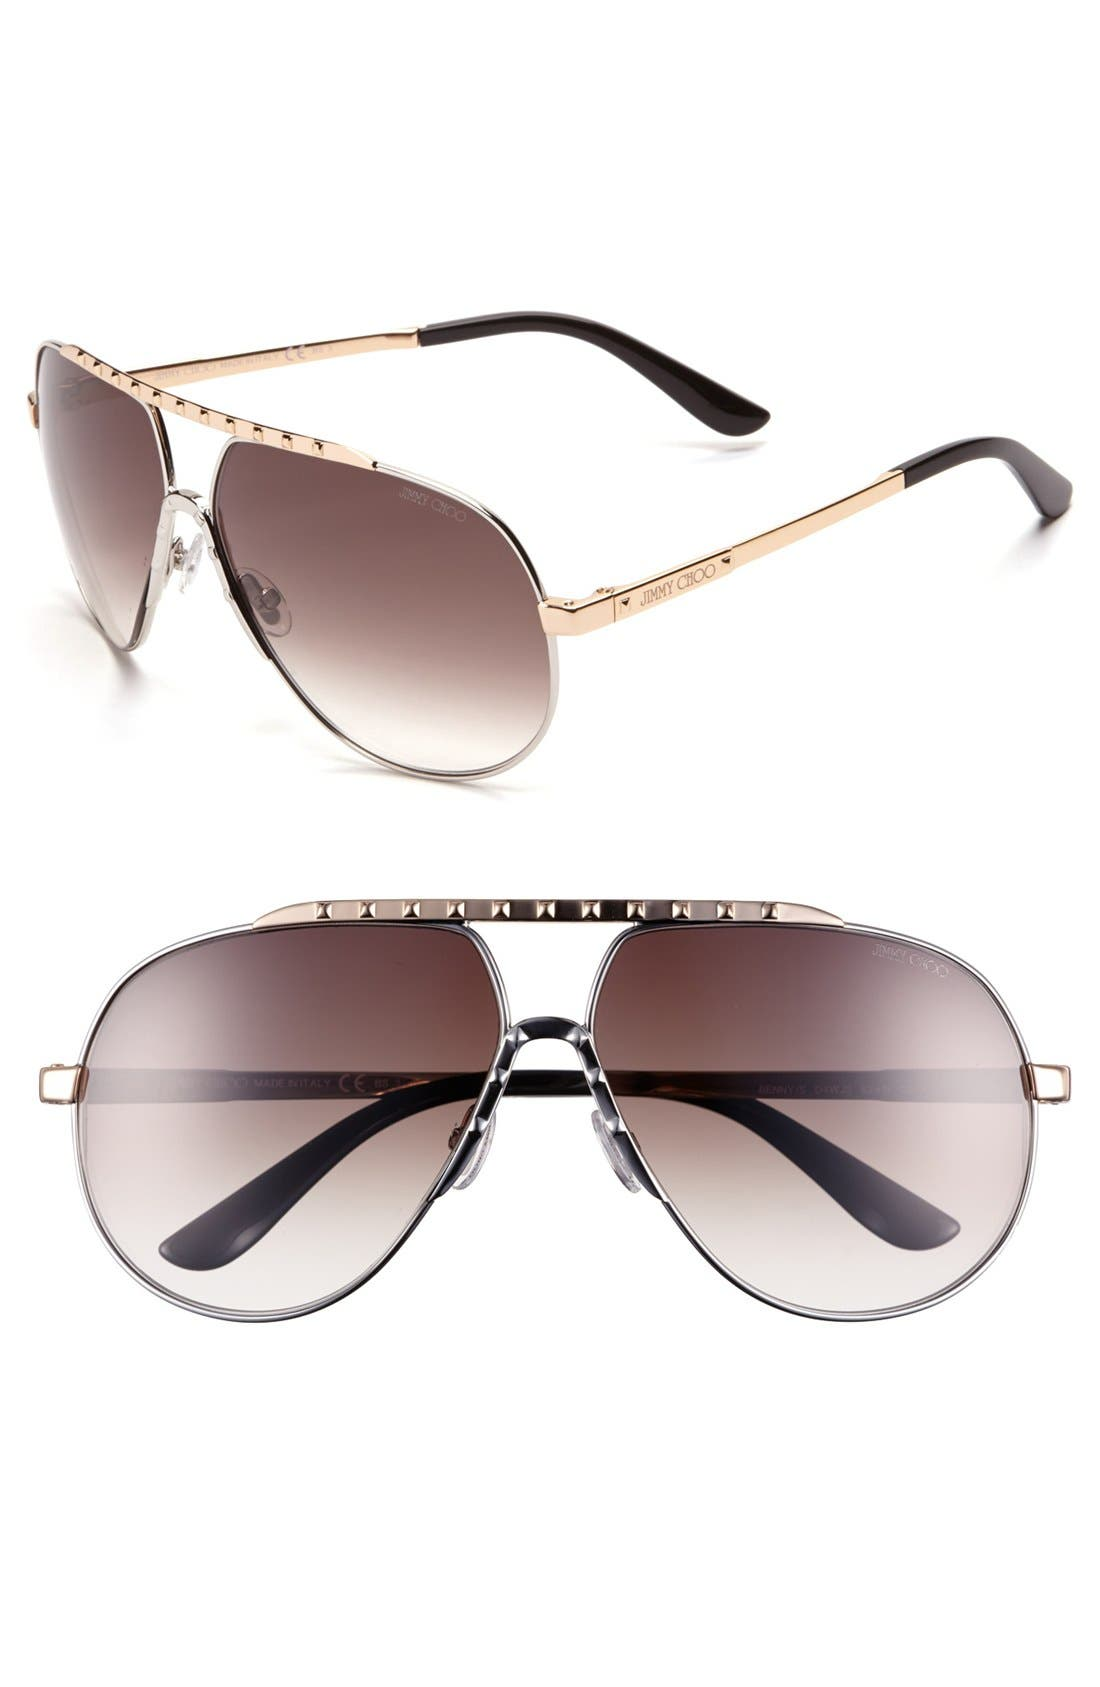 Main Image - Jimmy Choo 62mm Stainless Steel Aviator Sunglasses